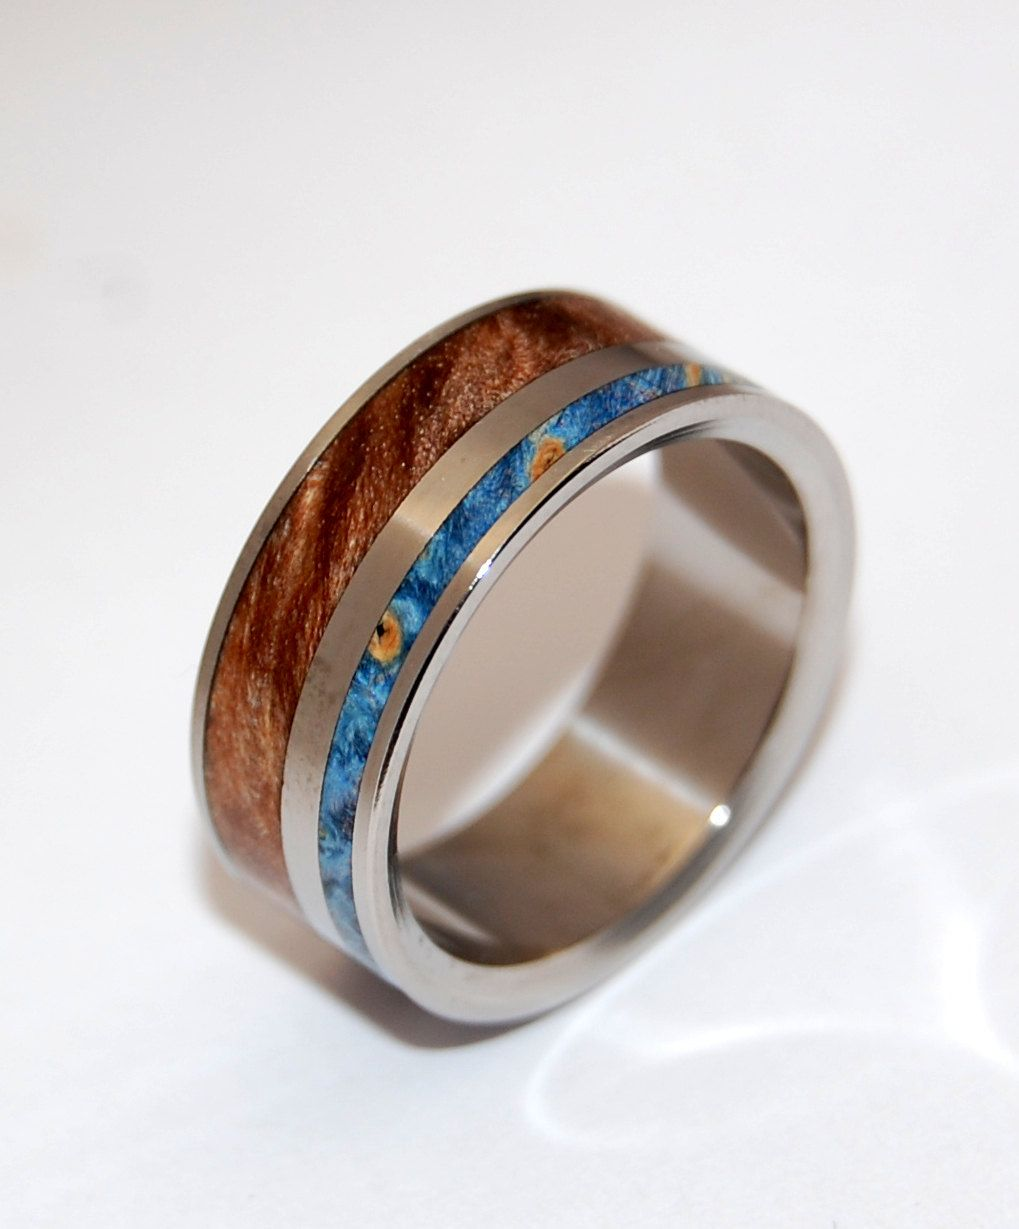 wooden wedding rings Earth By Water II Wooden Wedding Rings 00 via Etsy